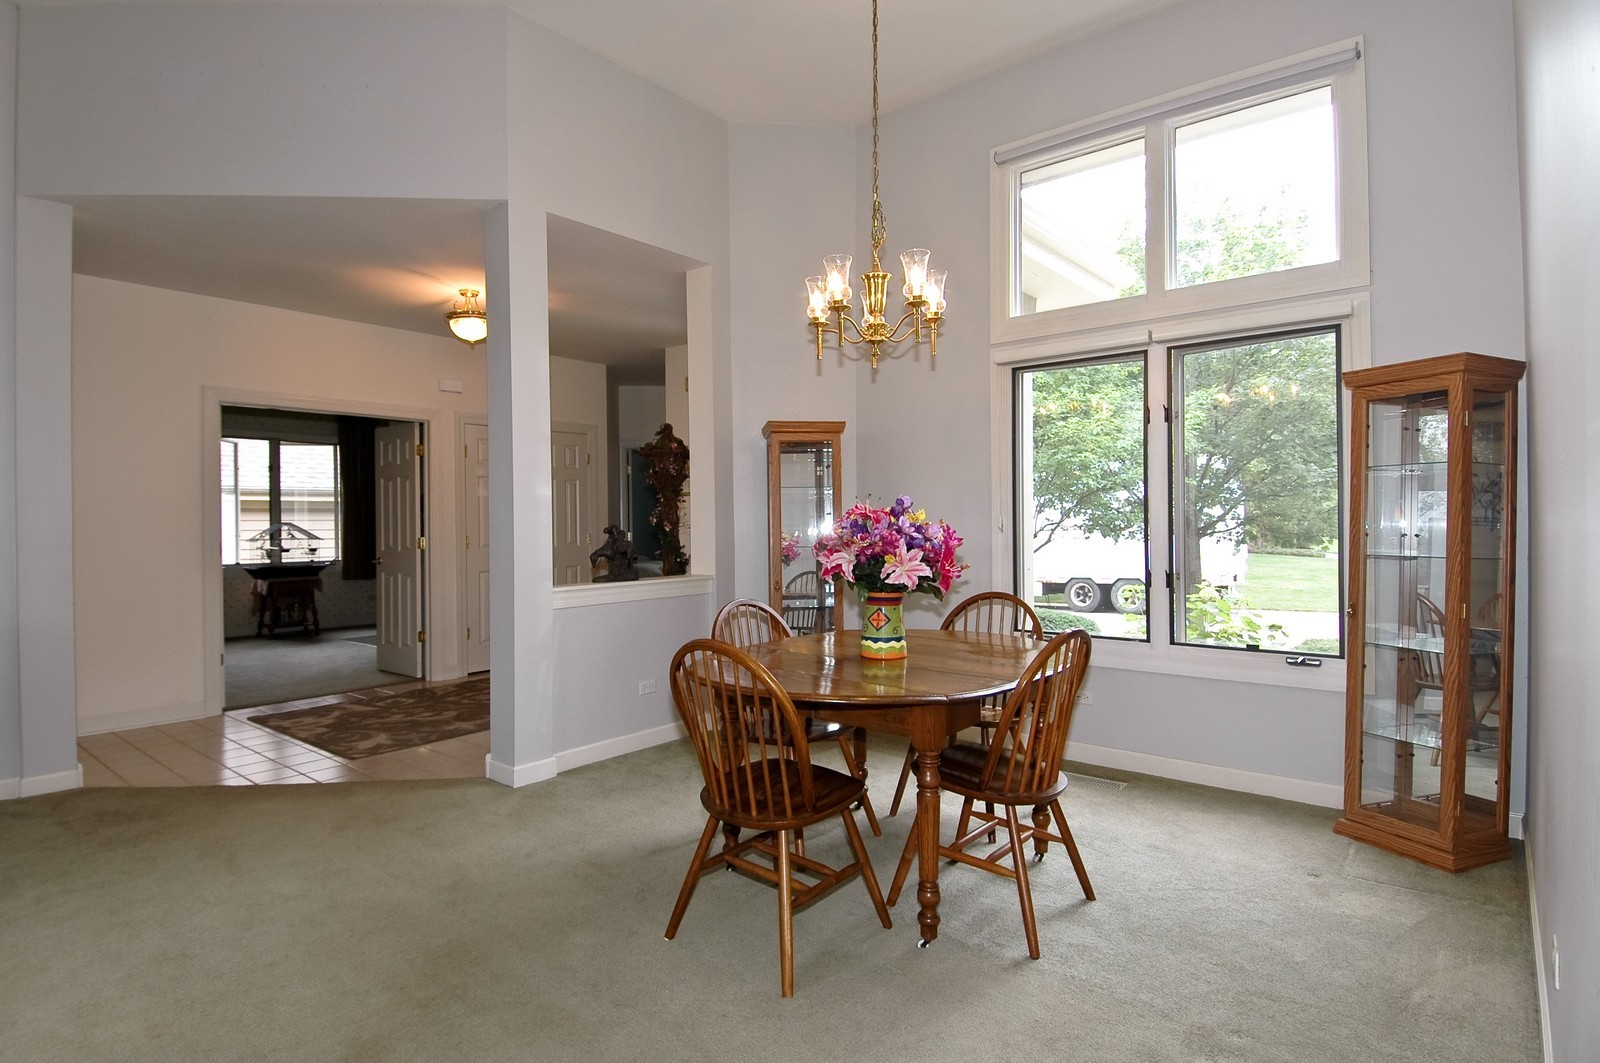 Real Estate Photography - 210 Course Dr, Lake in the Hills, IL, 60156 - Foyer/Dining Room